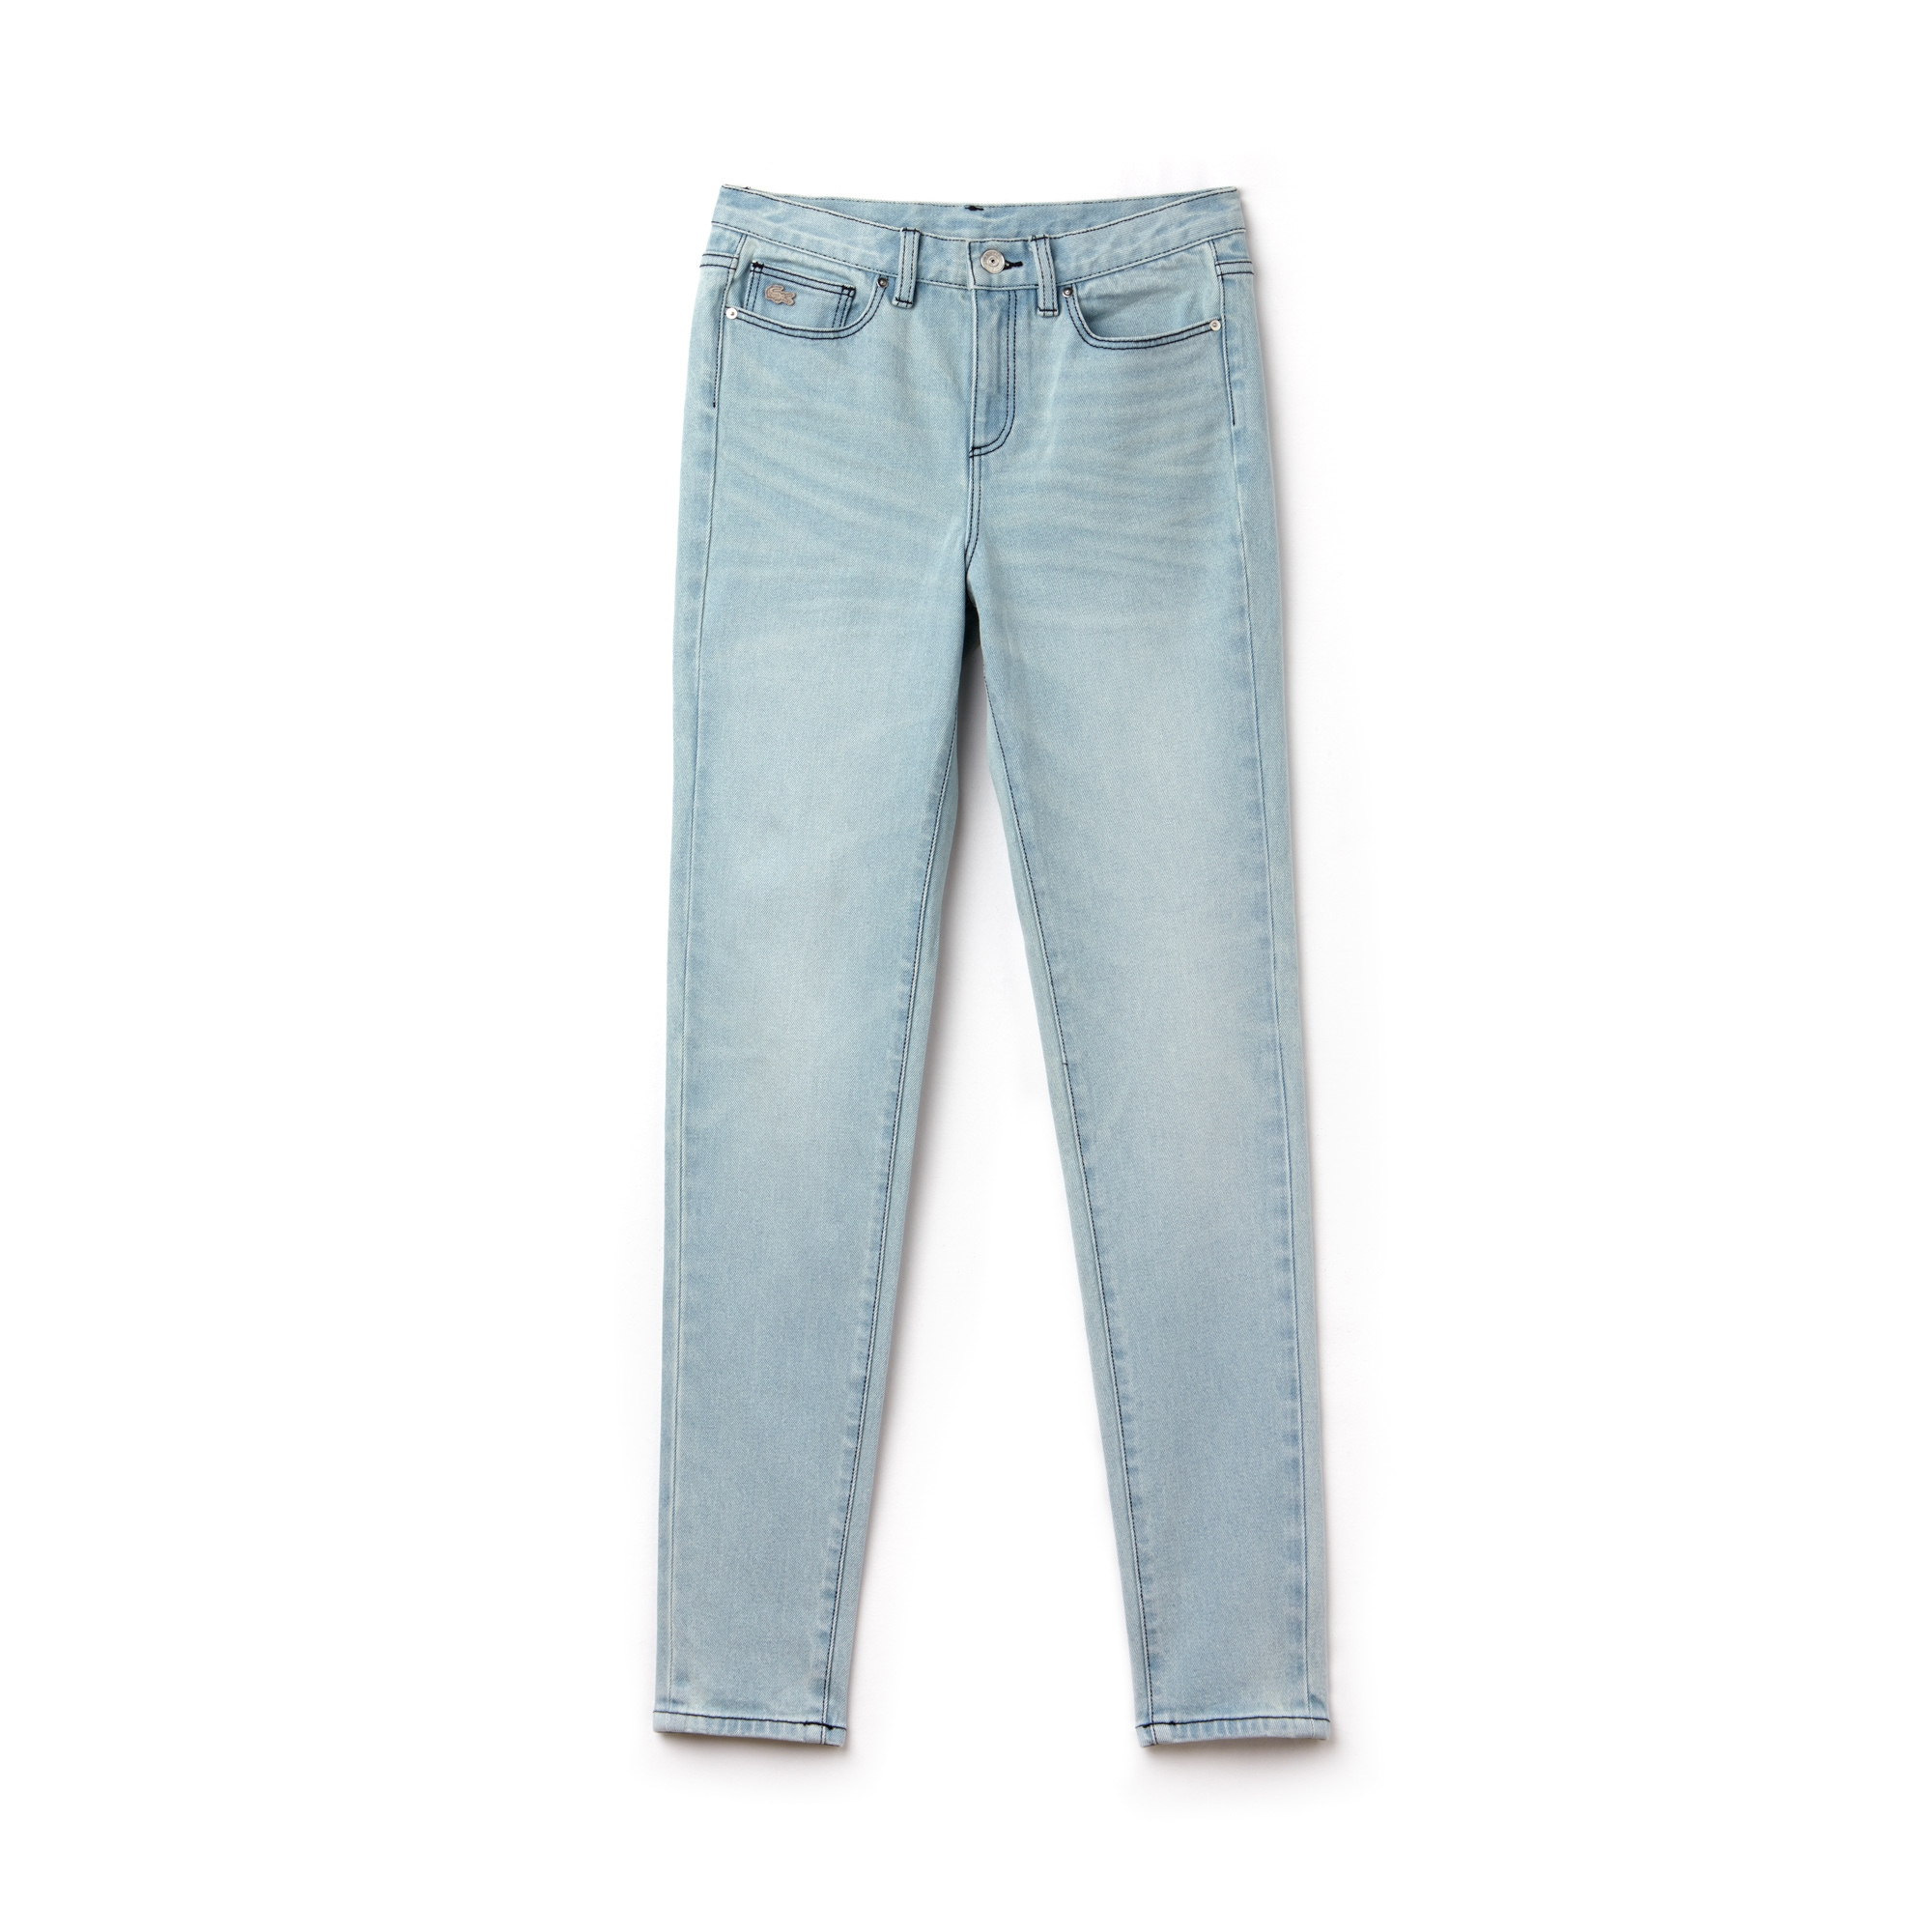 Jean 5 poches Lacoste LIVE en denim de coton stretch